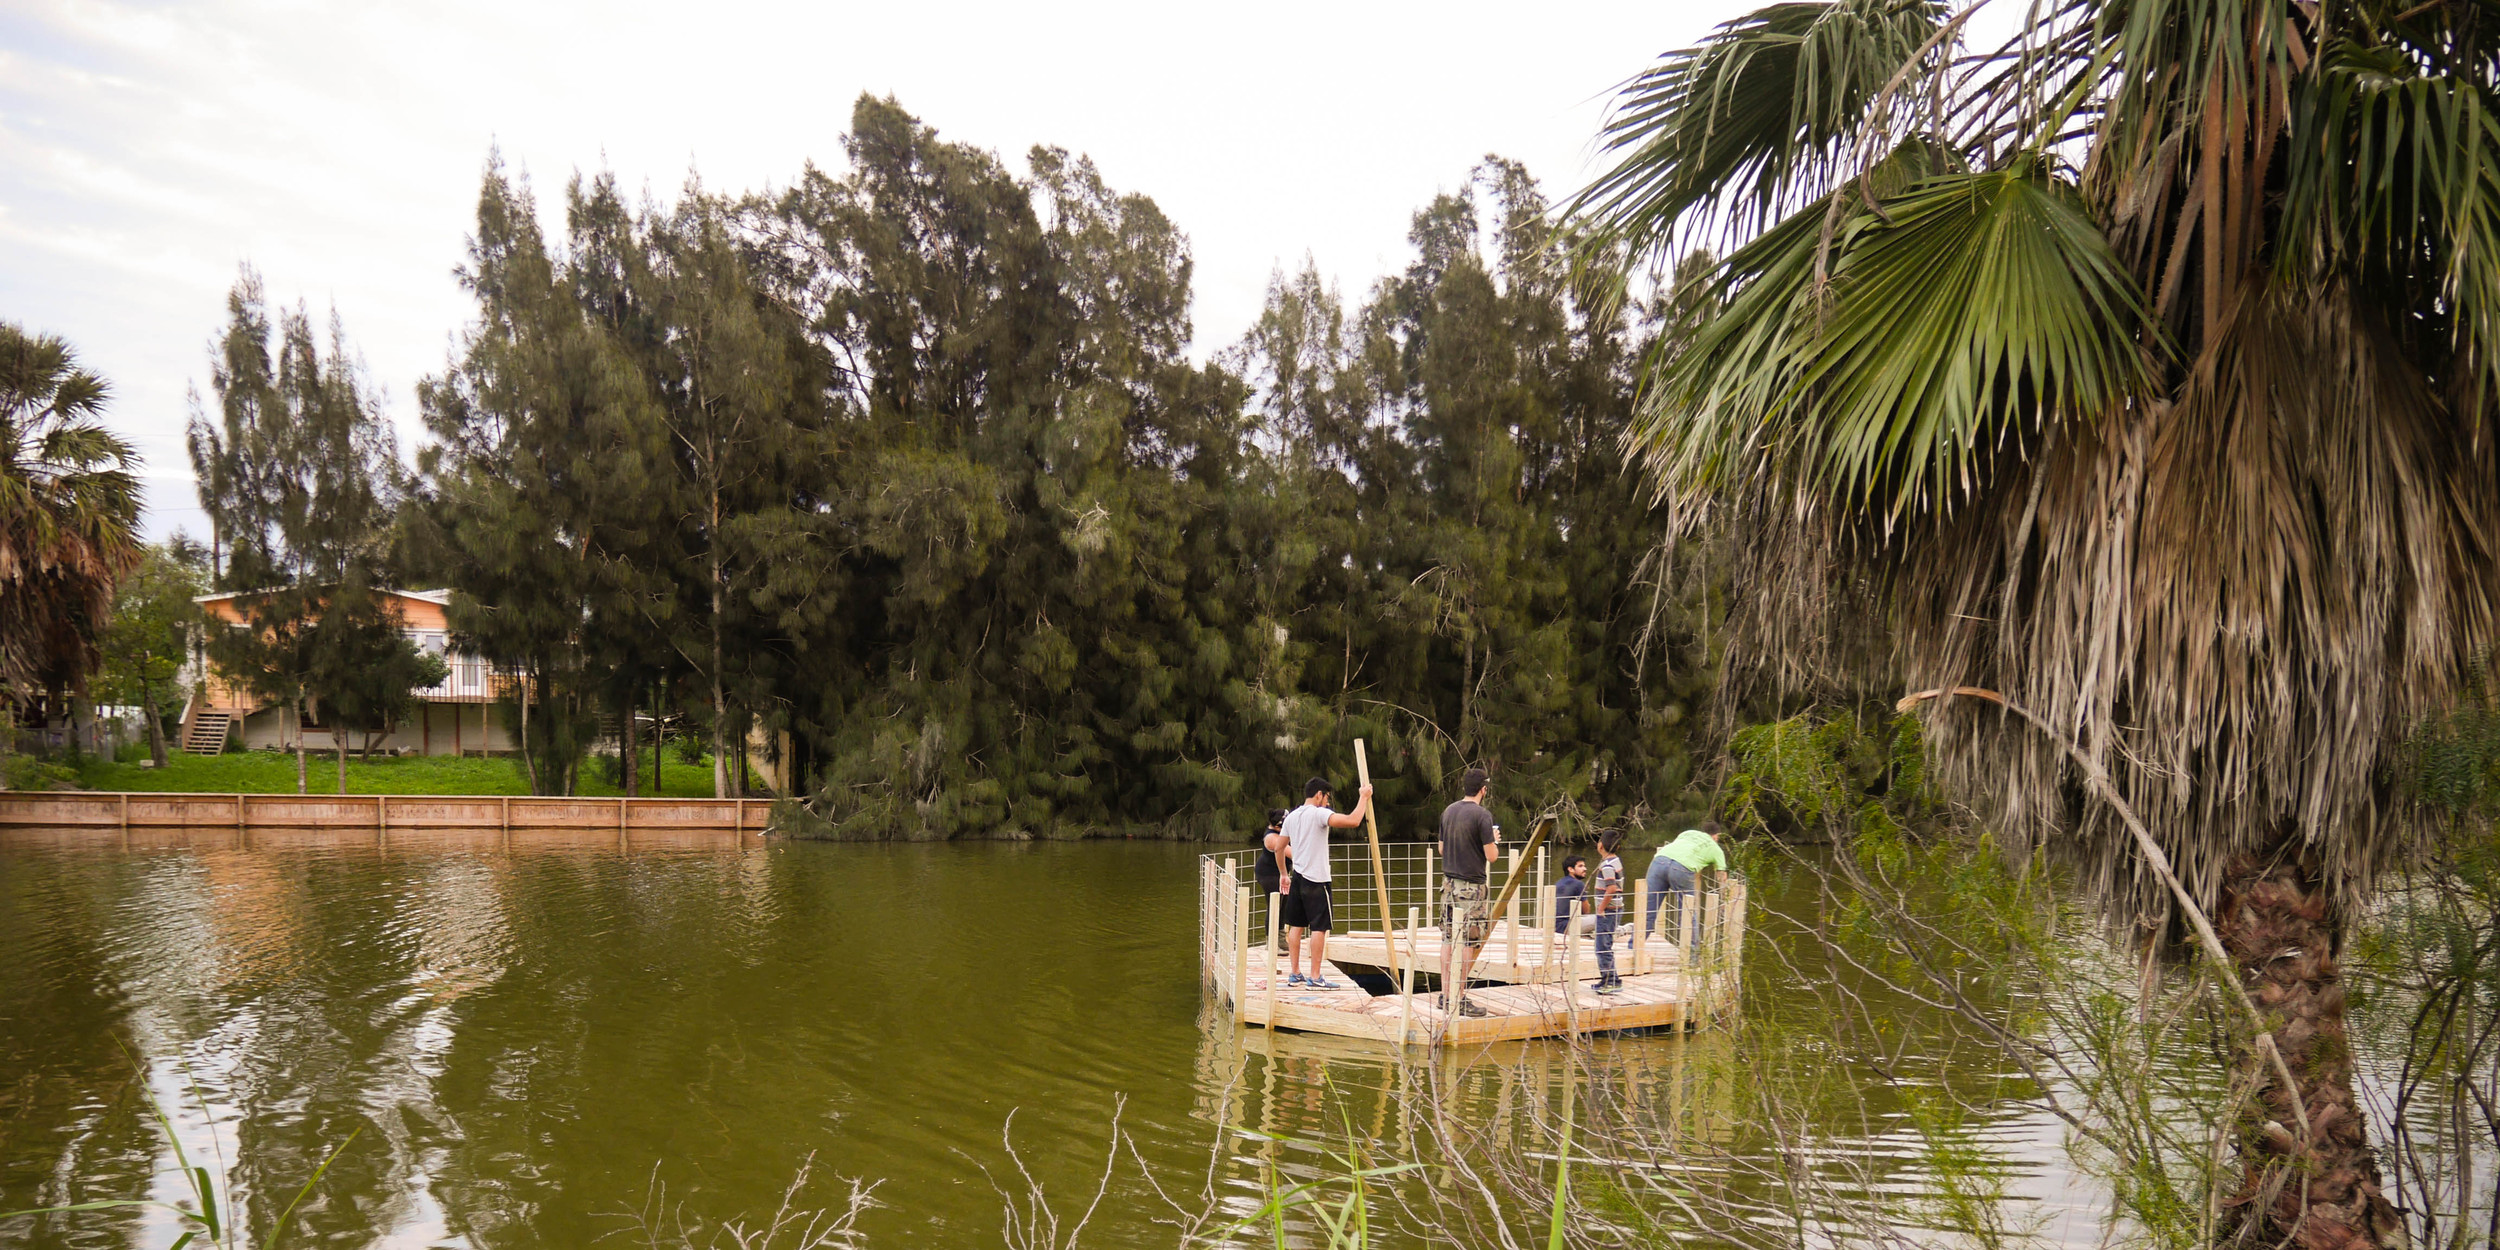 Floating the platform down the Resaca to its final location.